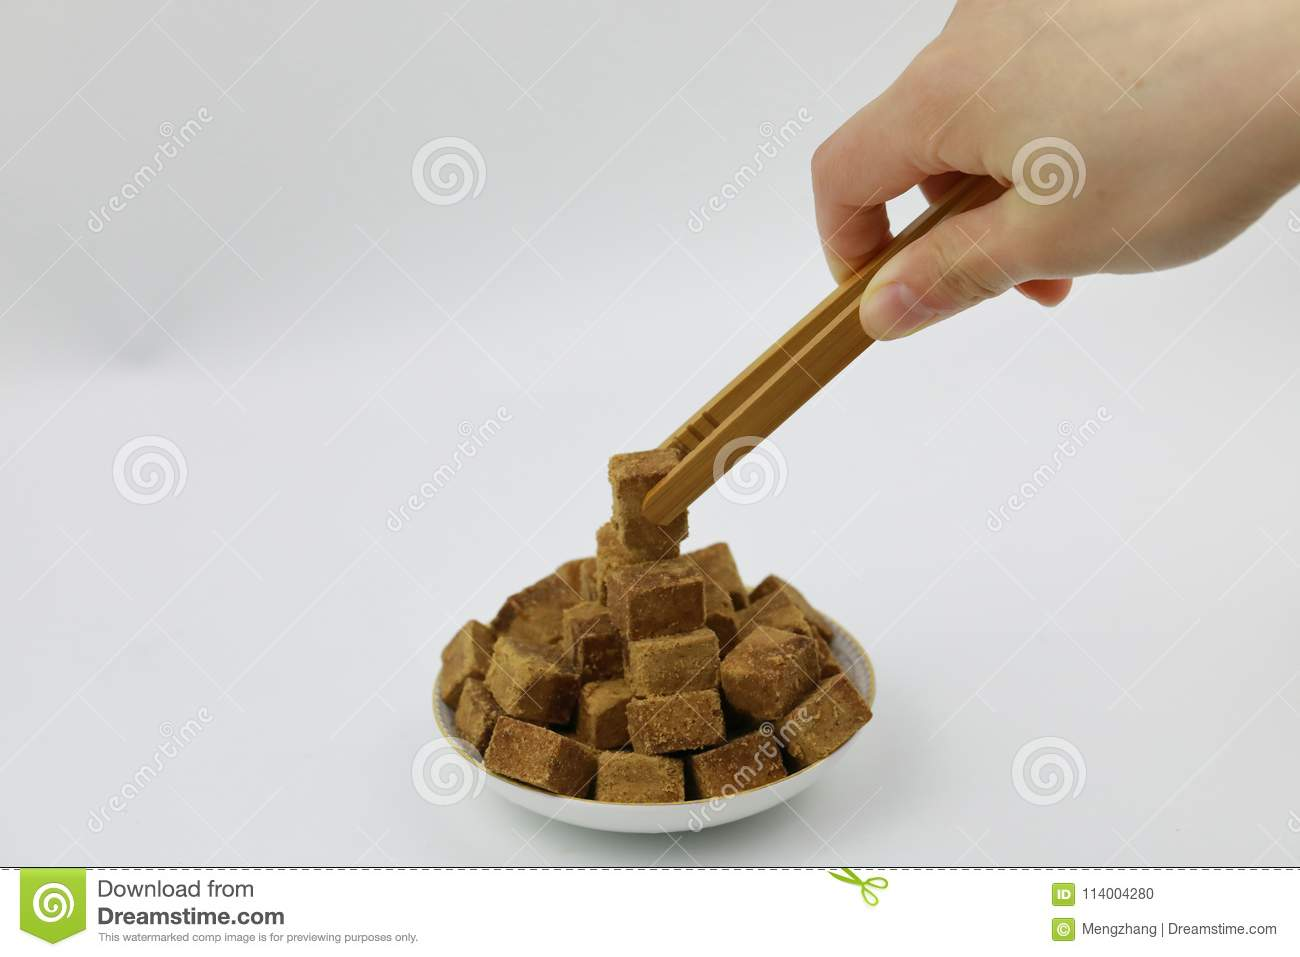 Download A Pile Of Brown Sugar Cubes On A White Plate Woman Hand Hold Wooden Tweezers On White Background Stock Photo - Image of cubes, like: 114004280